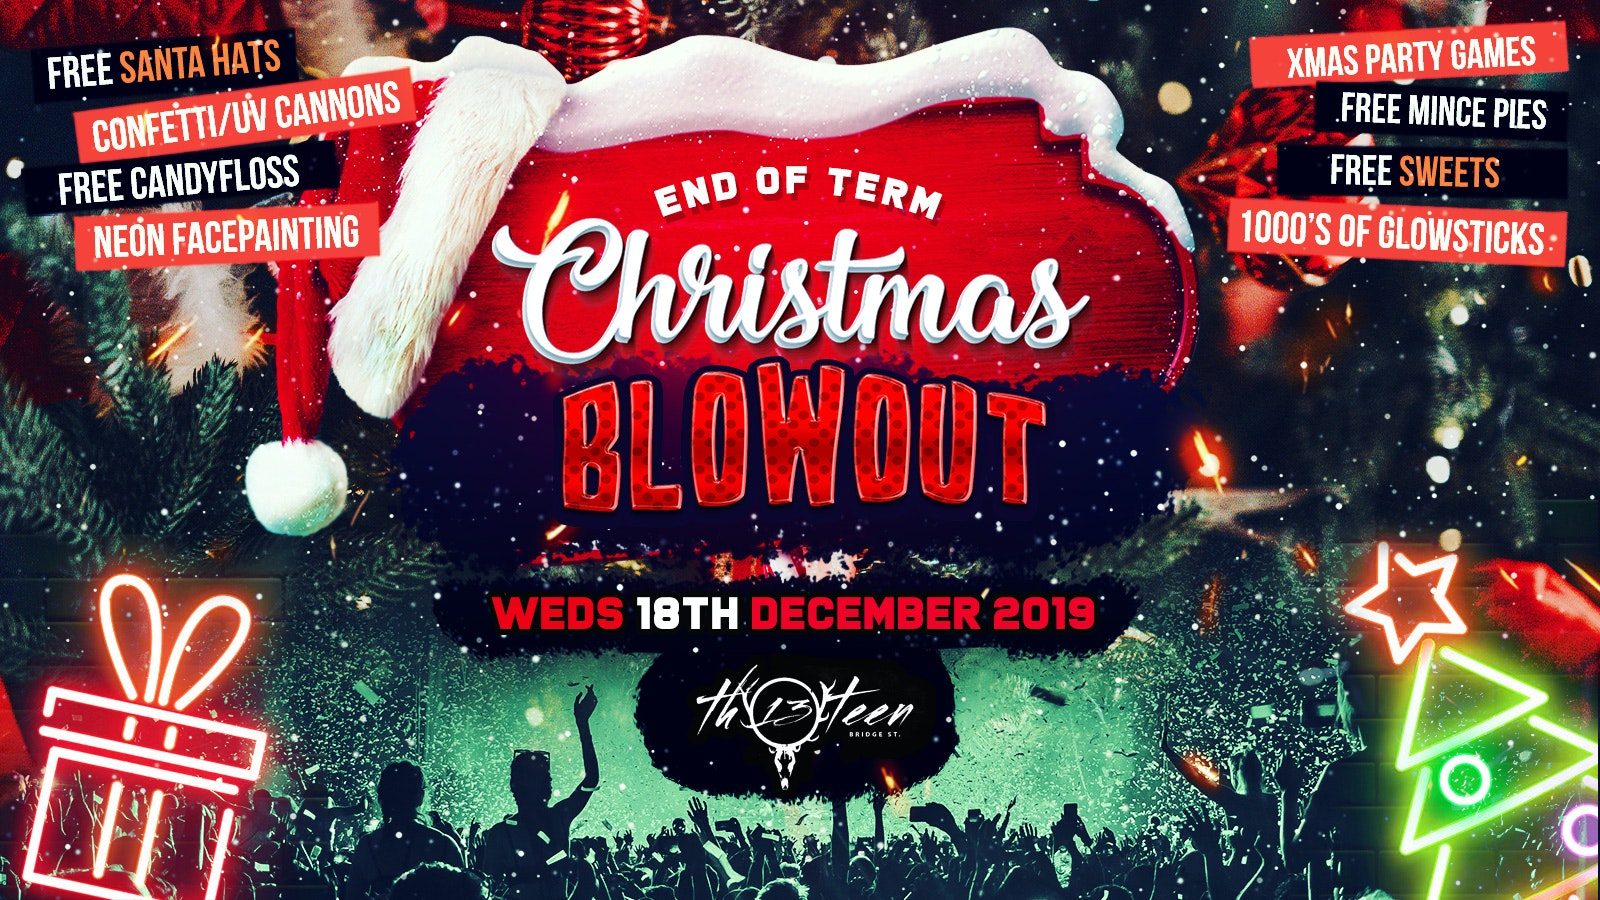 End of Term Christmas Blowout – Surrey / Guildford!!